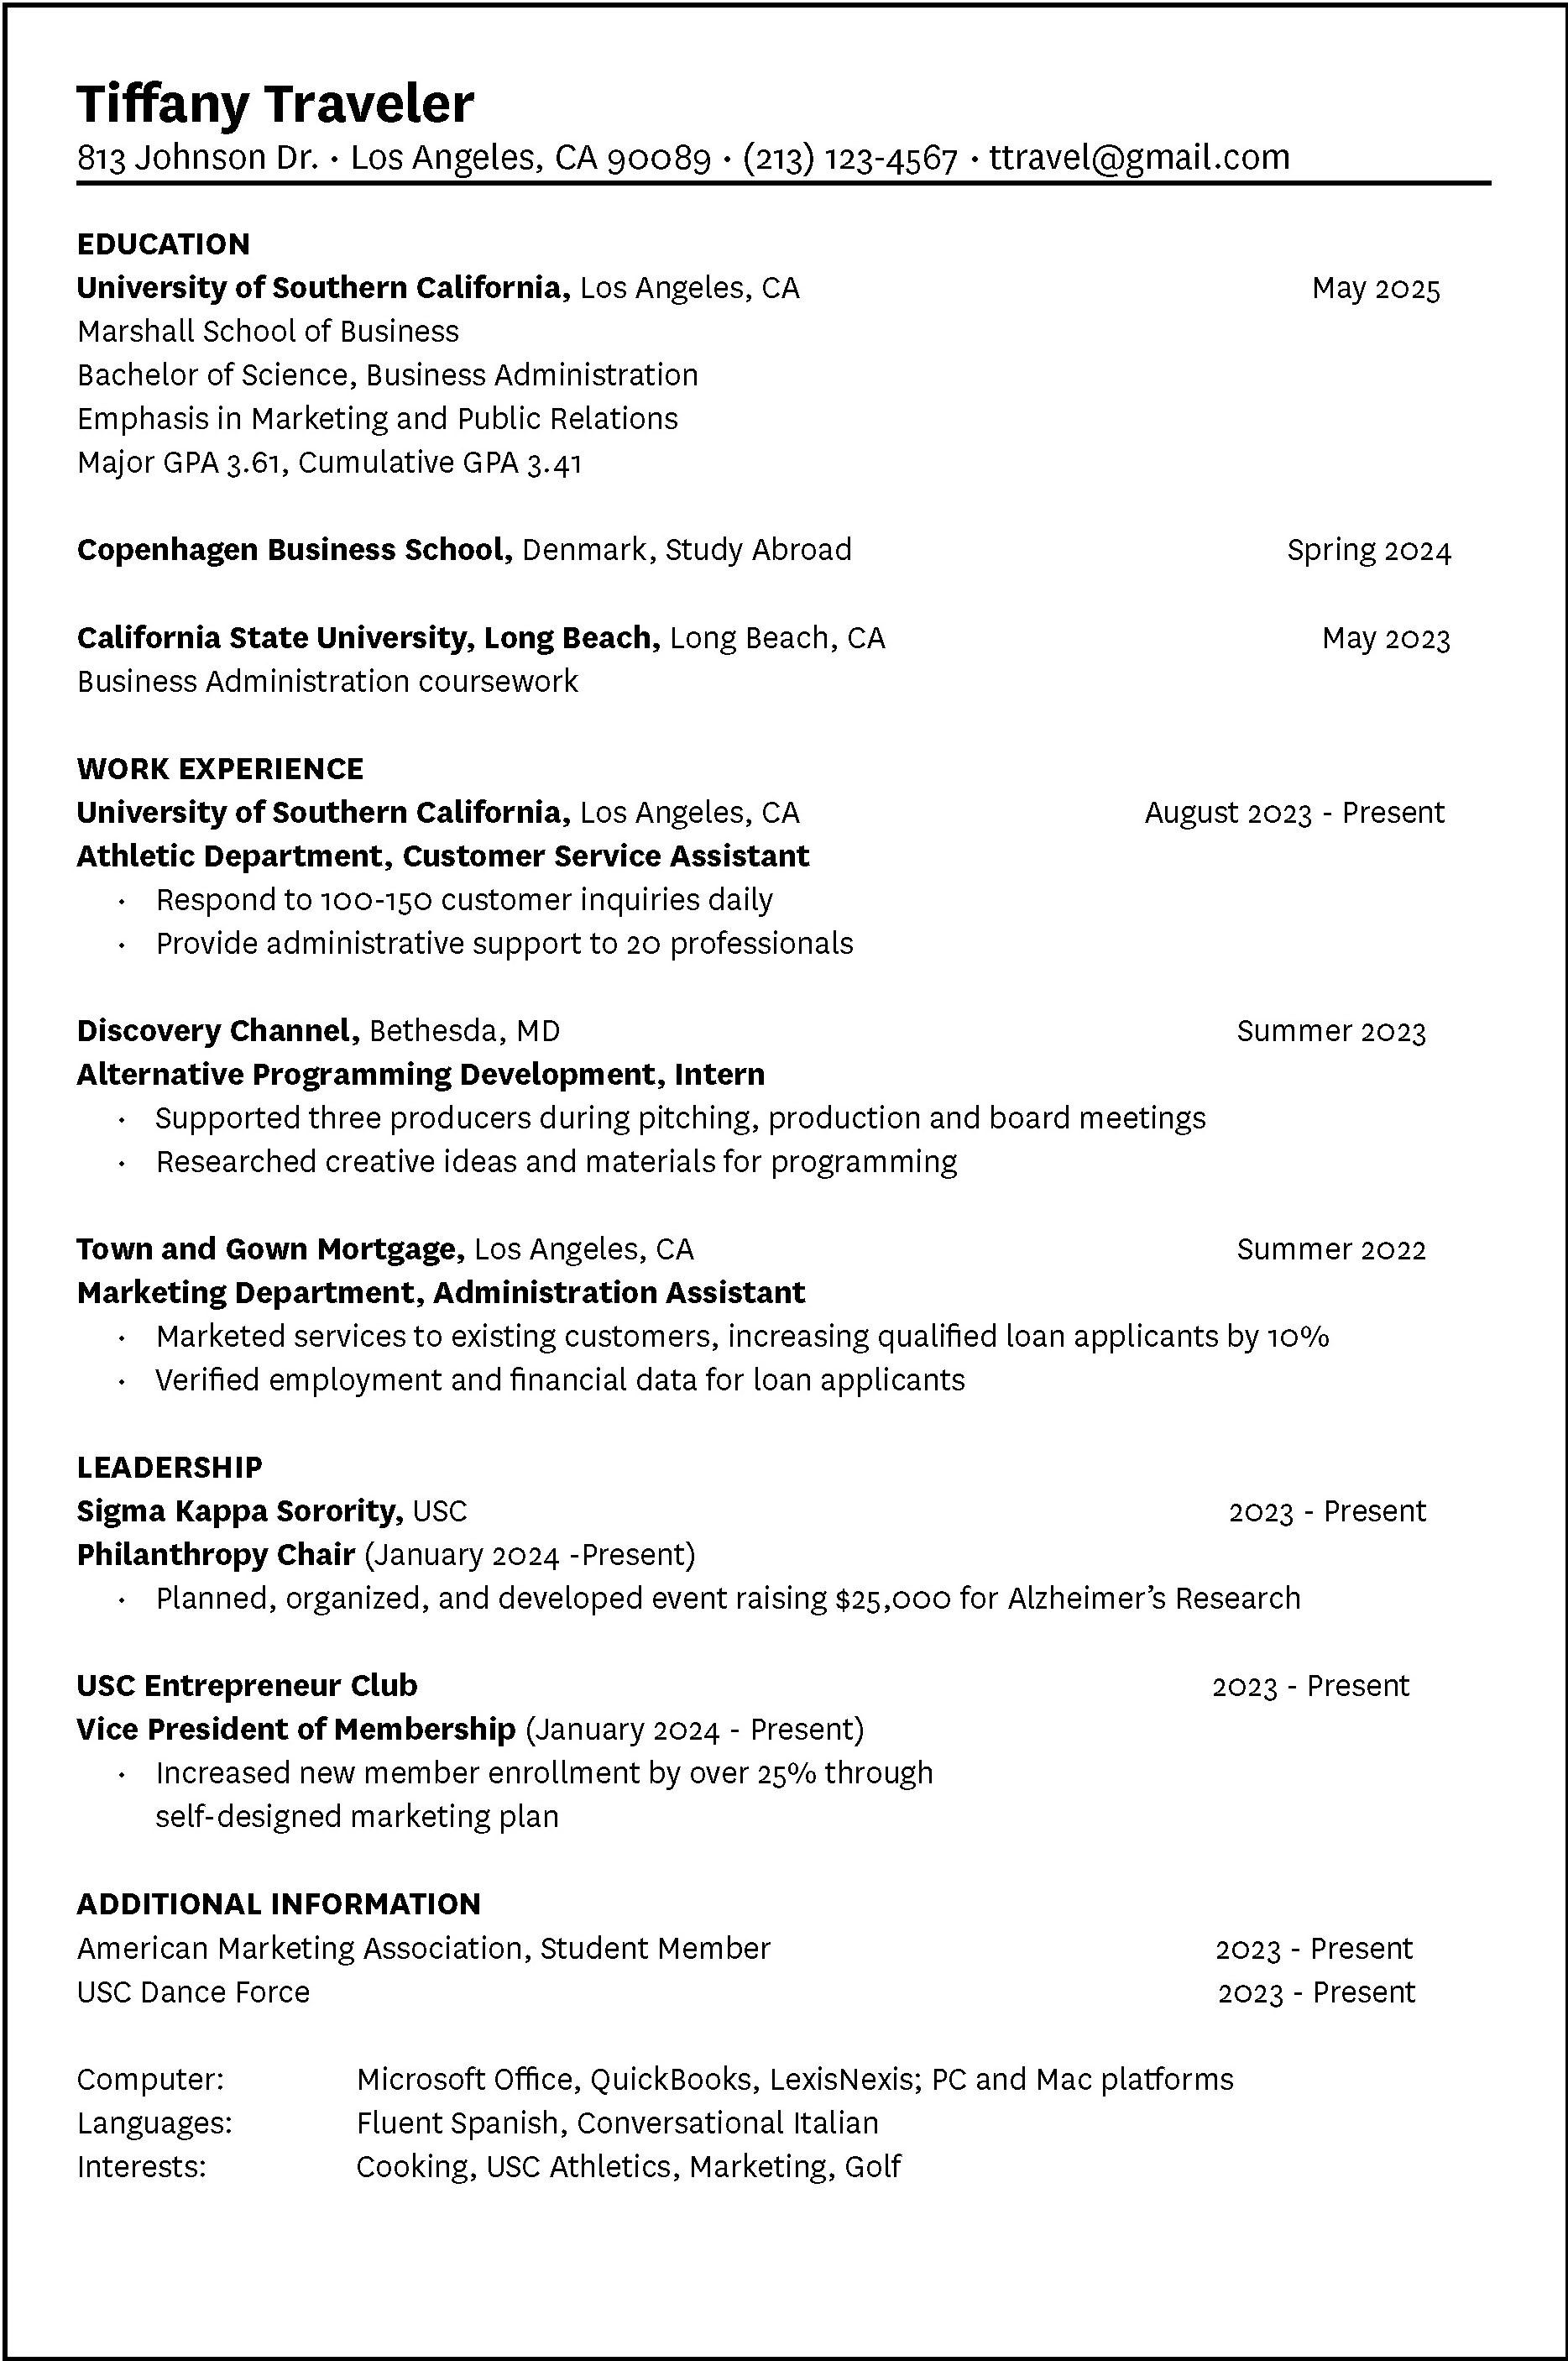 40 New Usc Marshall Resume Template with Graphics